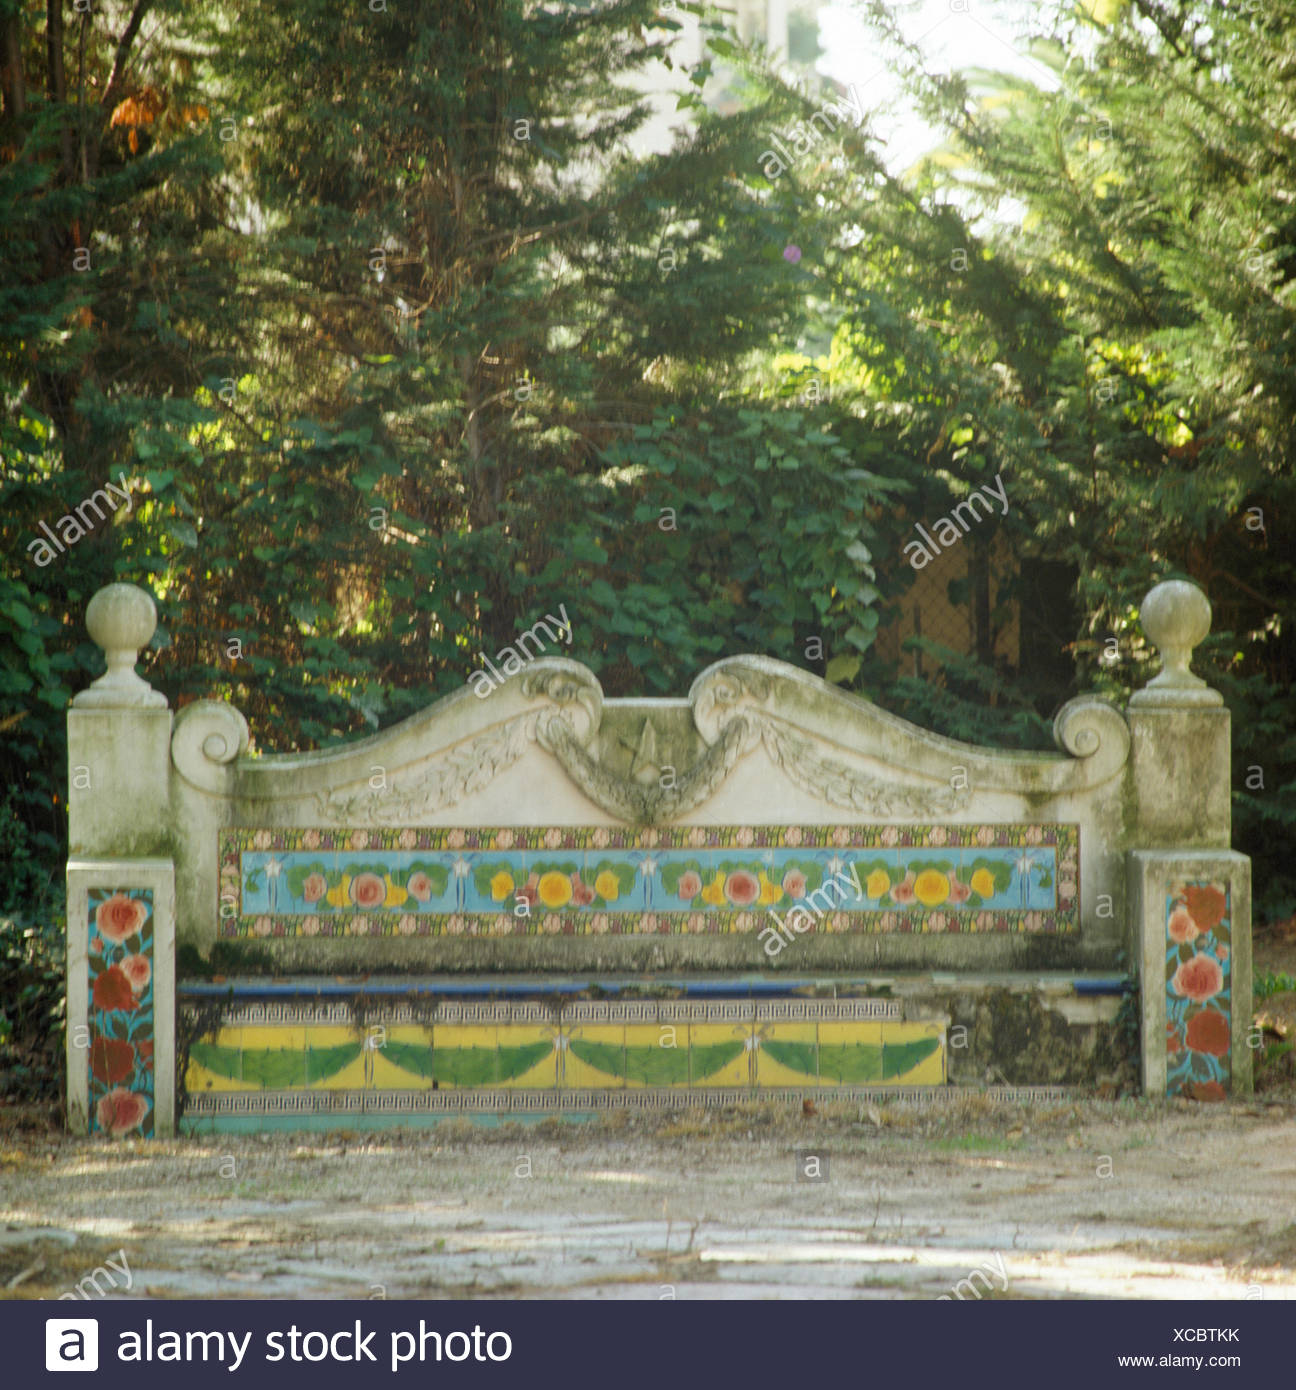 Stone seat with decorative tiles in large Italian garden - Stock Image